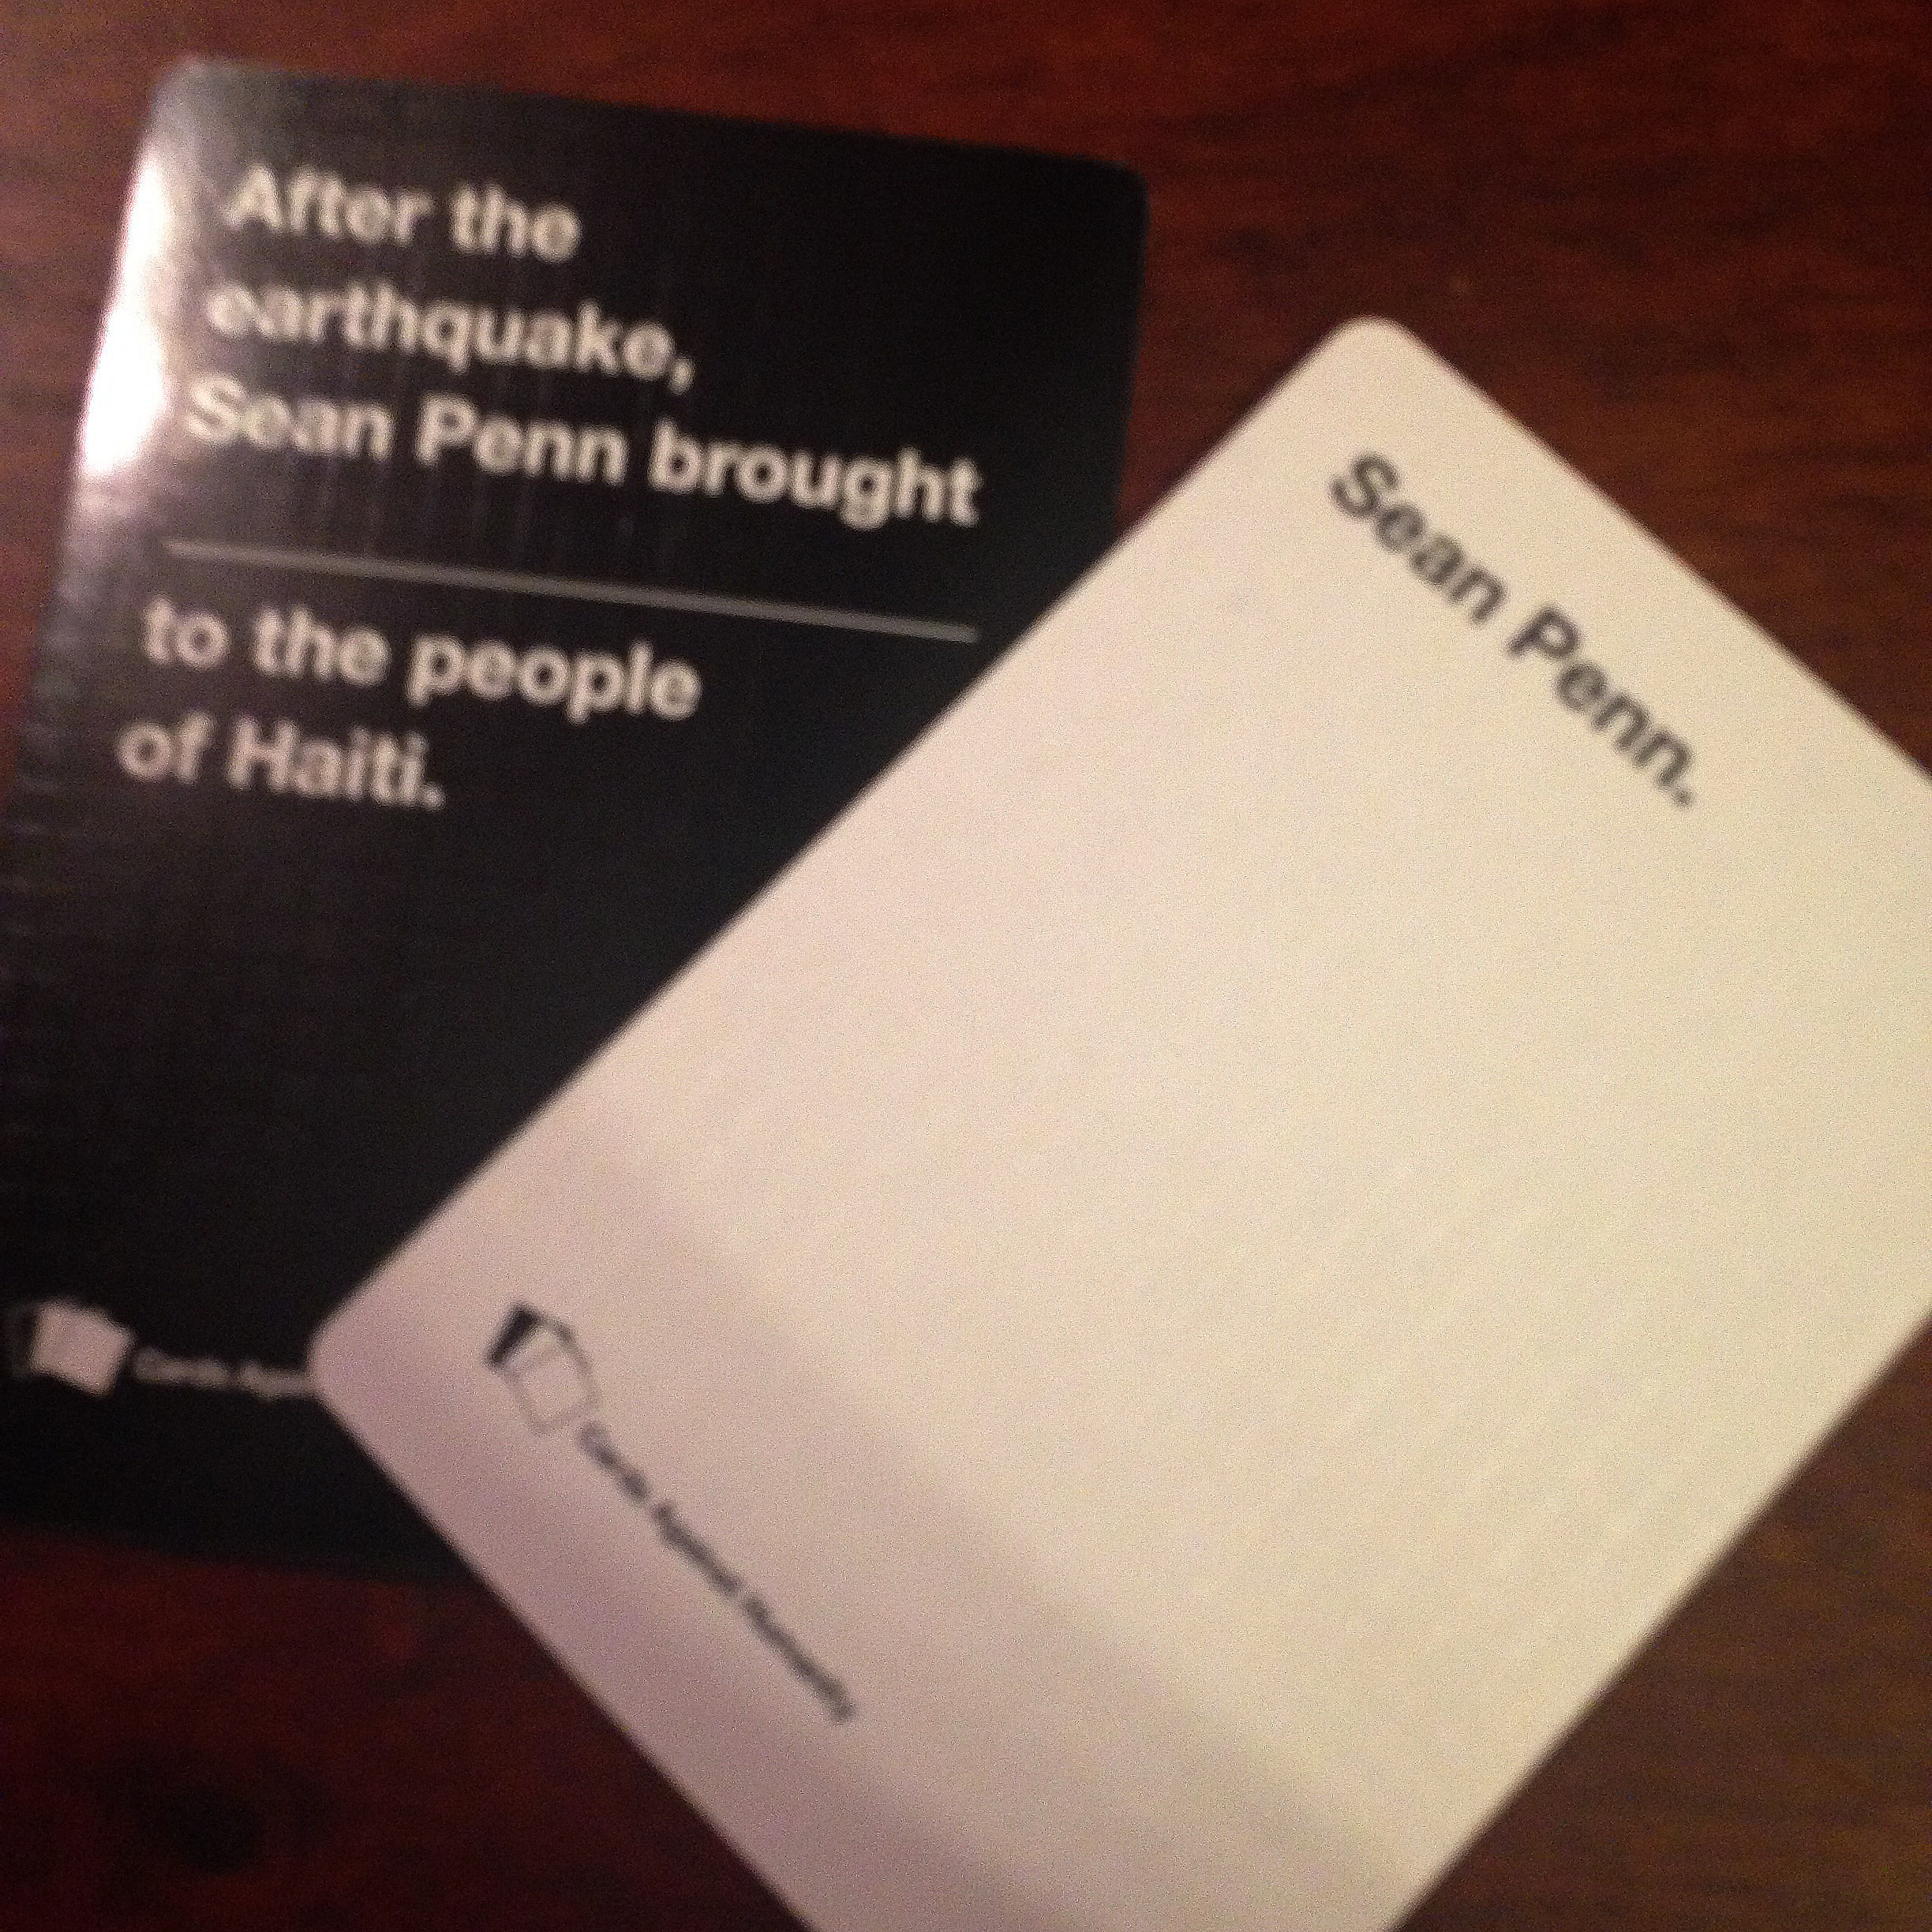 Cards Against Humanity - After the Earthquake Sean Penn brought Sean Penn to the People of Haiti.